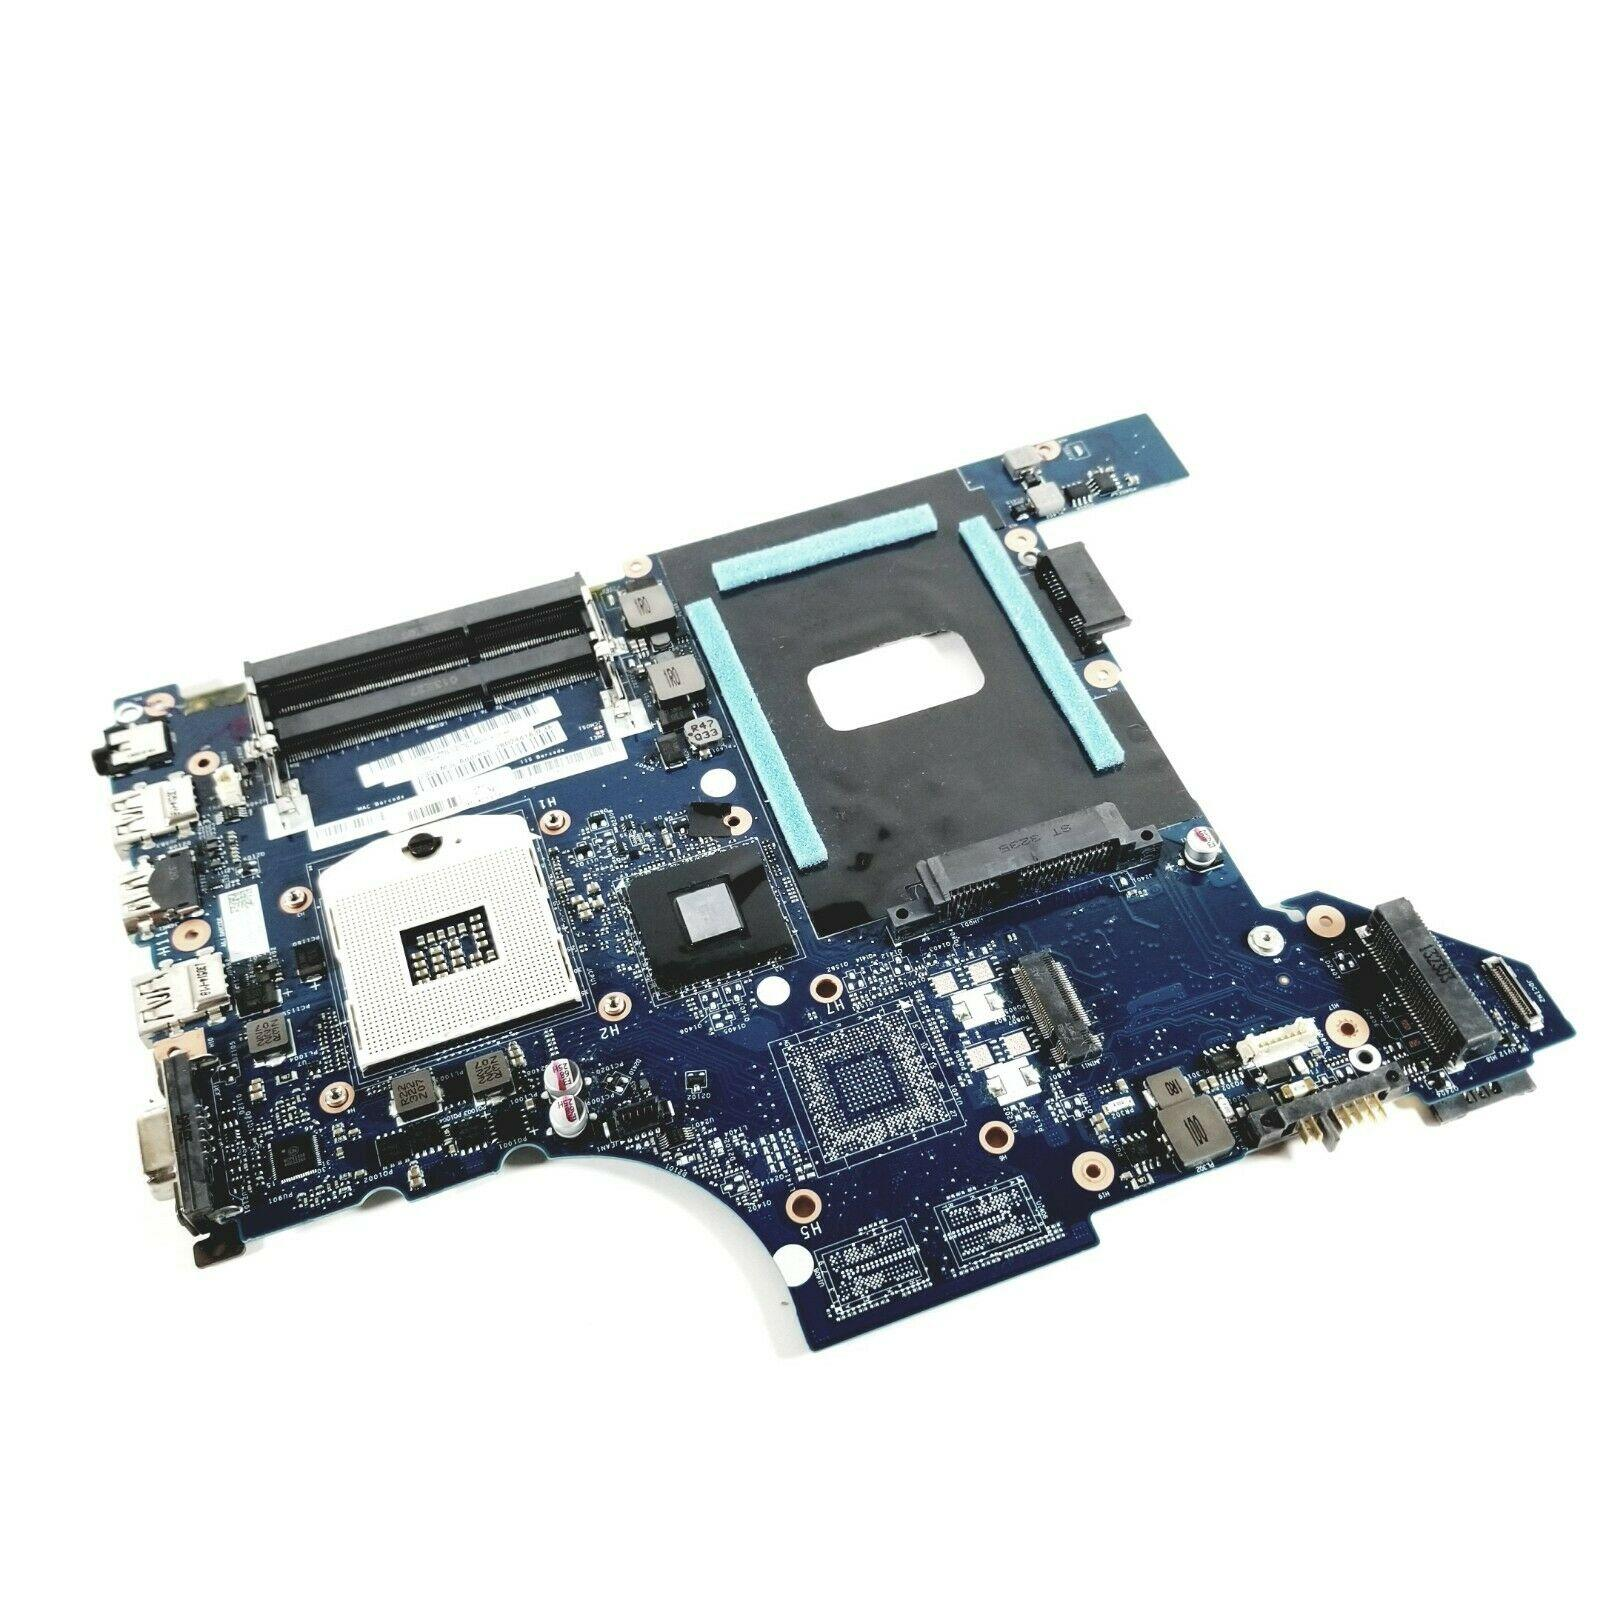 Laptop motherboard for Lenovo Thankpad E431 PC Mainboard 04Y1290 VILE1 NM-A043 full tesed DDR3